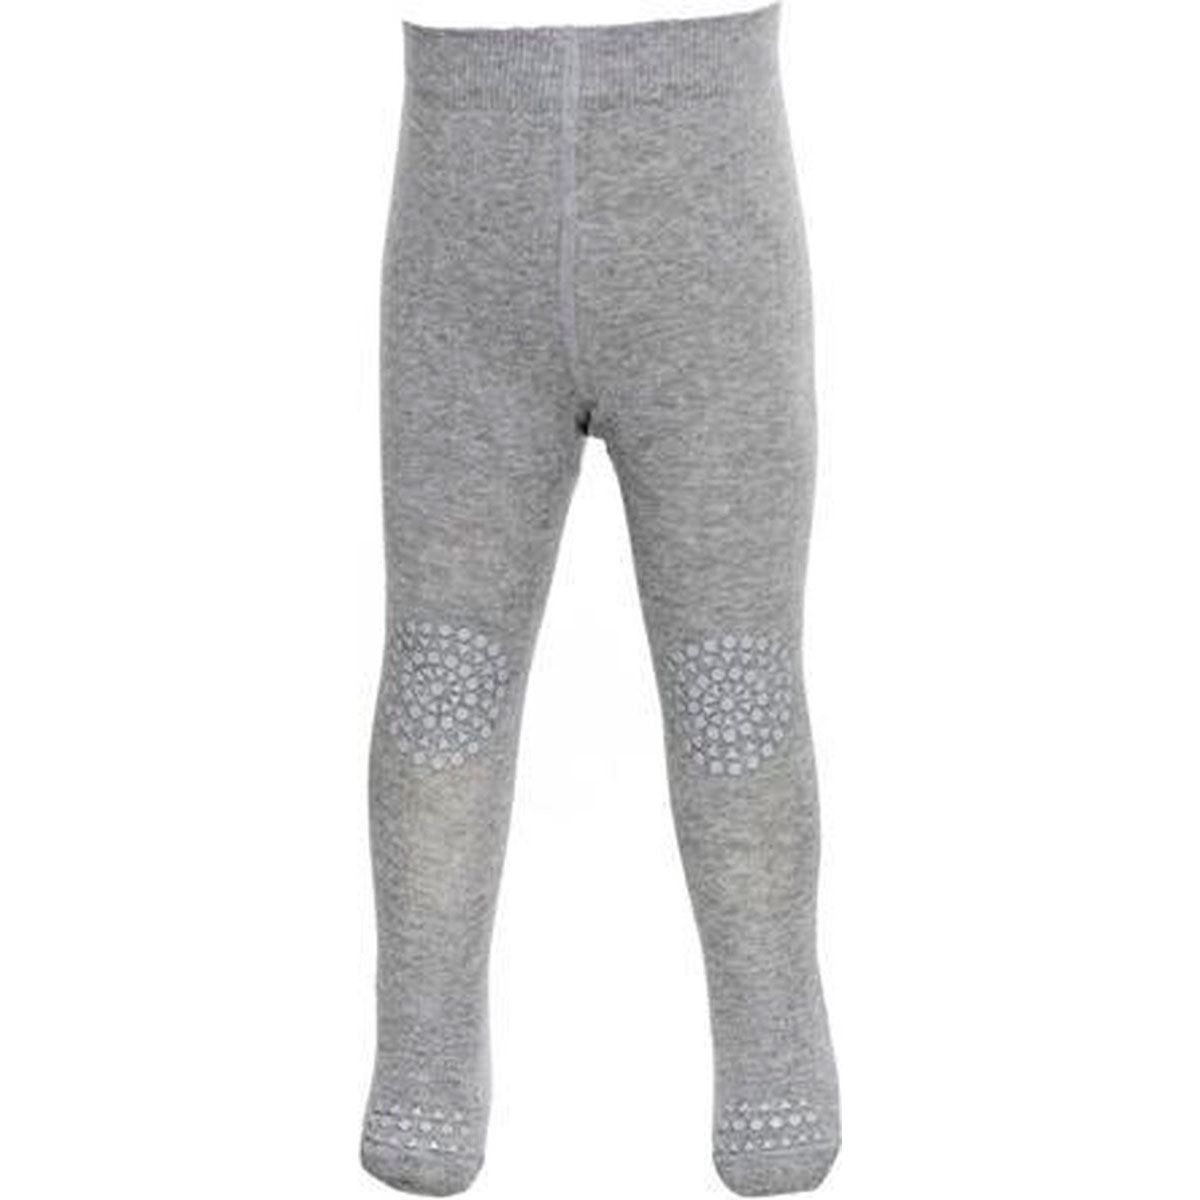 Leotardos Gateo gris 6-12m